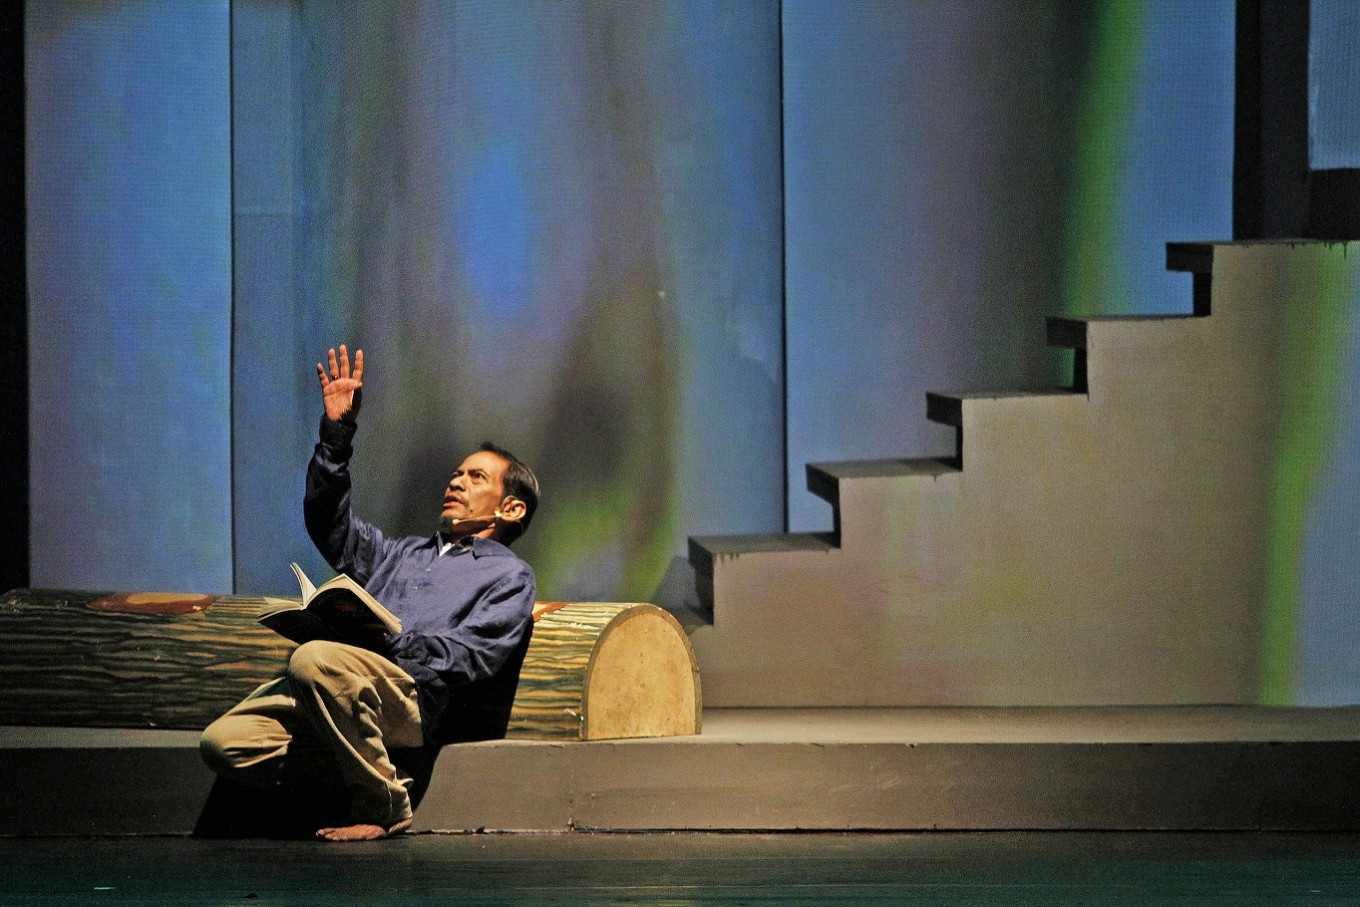 'Manusia Istana': More than just a poetry reading